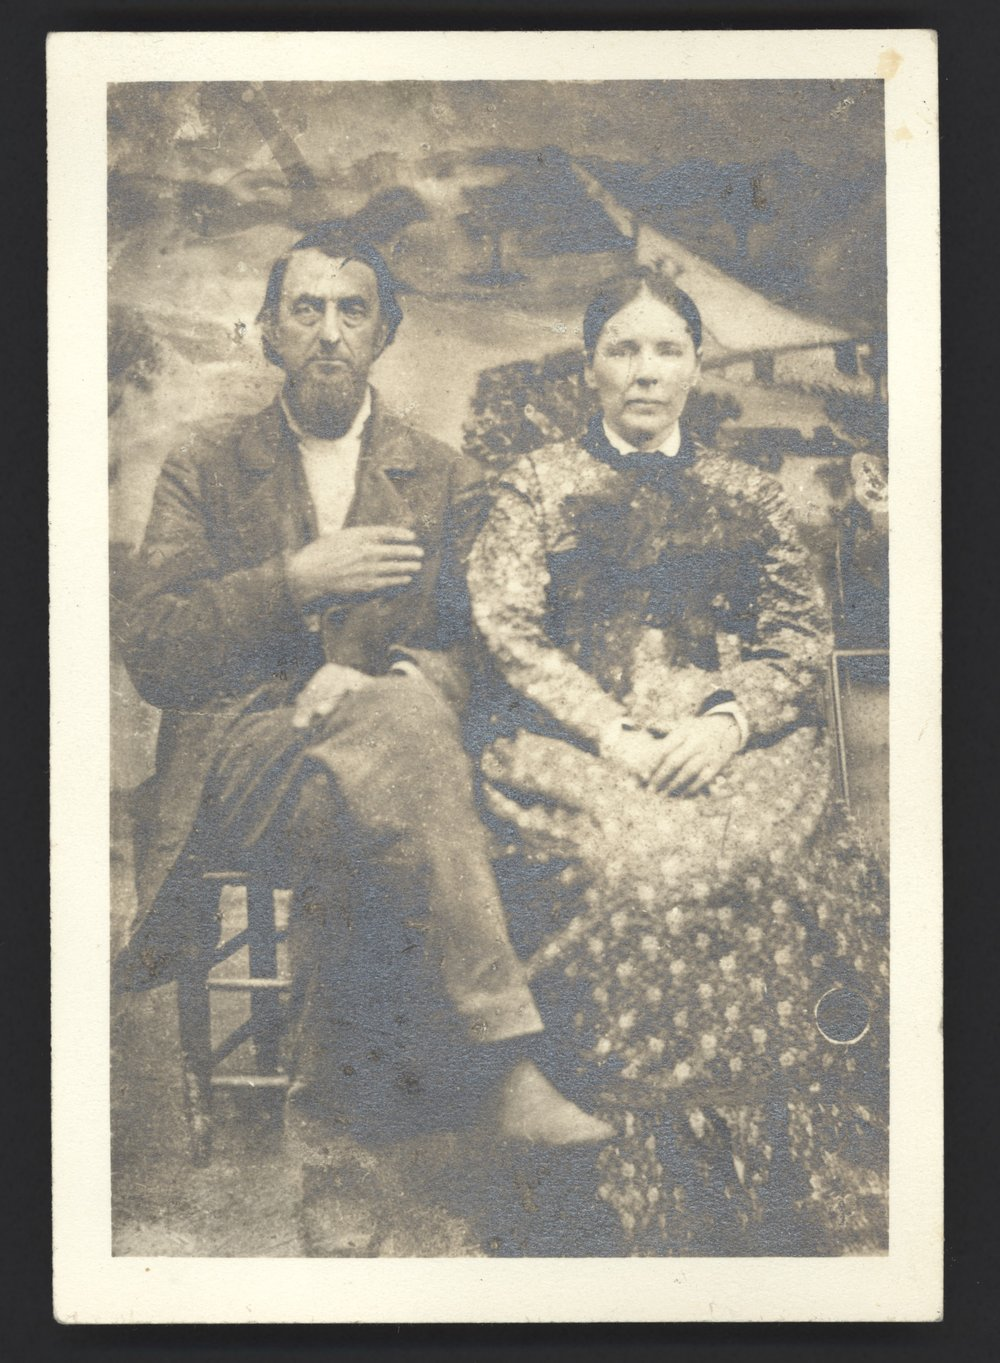 James R. & Susan Cooper Lomax, John's grandparents moved the family from MIssissippi to Texas in 1867